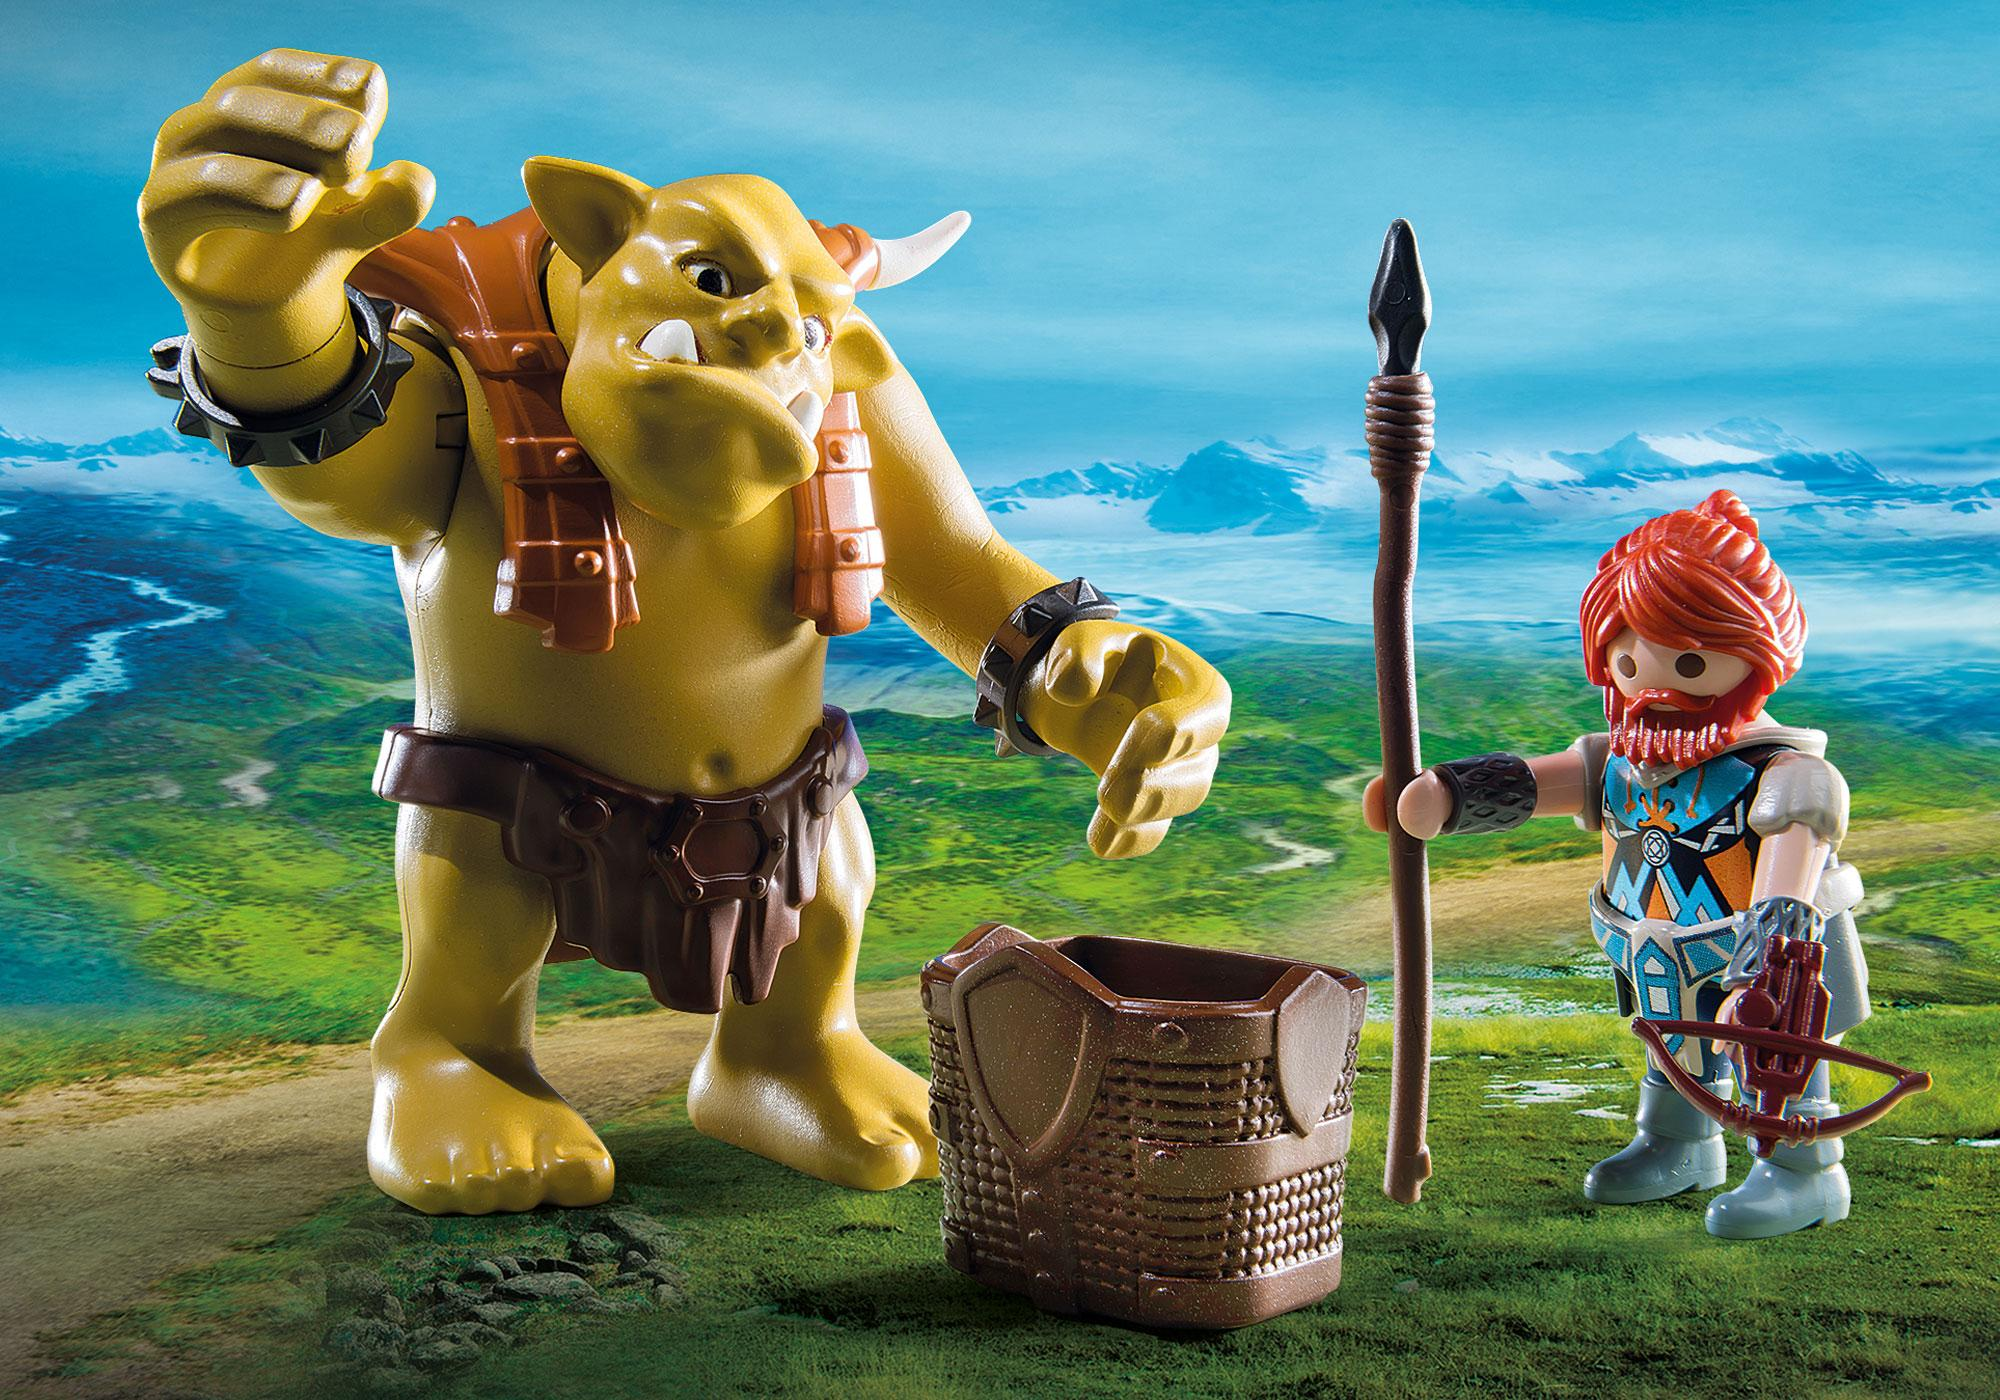 http://media.playmobil.com/i/playmobil/9343_product_extra1/Giant Troll with Dwarf Fighter